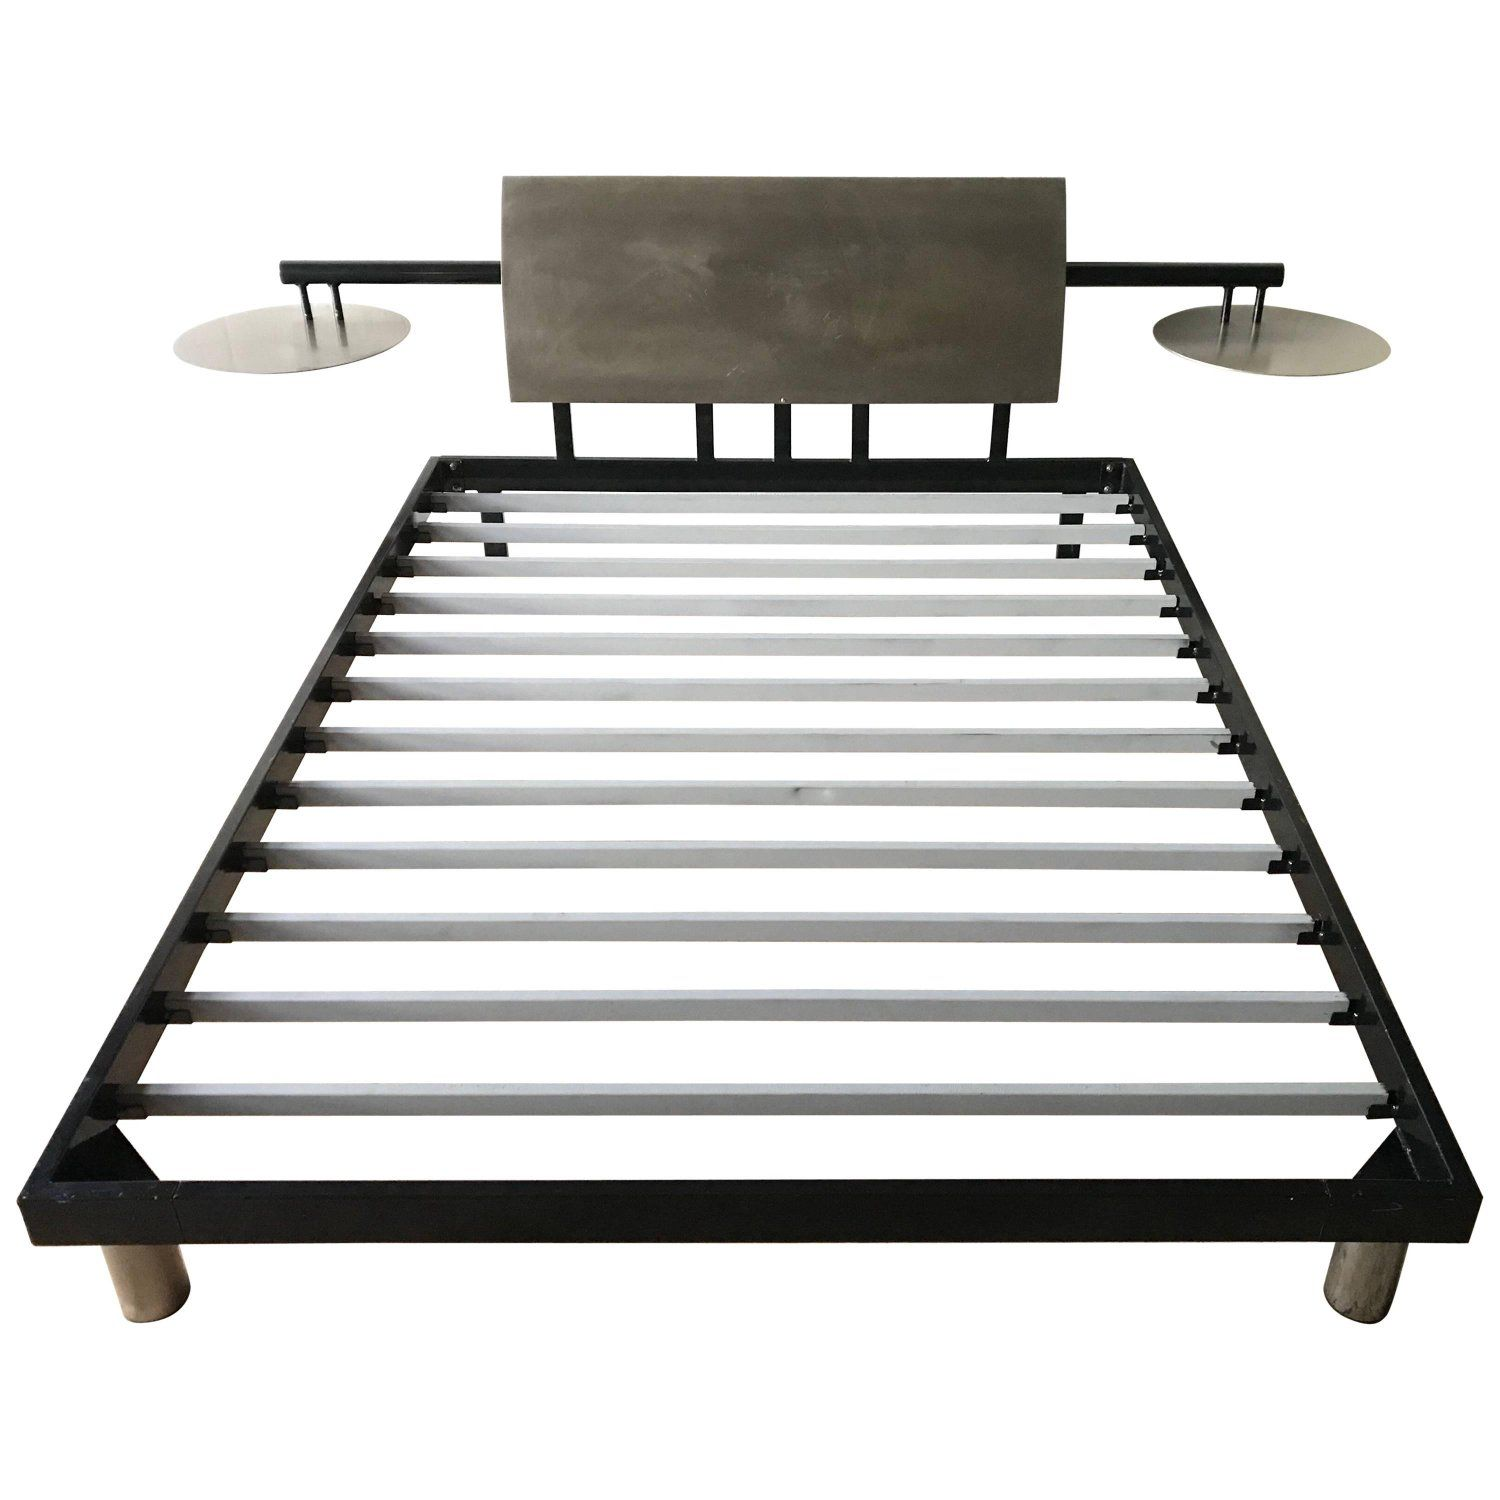 PostModern Steel Queen Bed with Integrated Floating